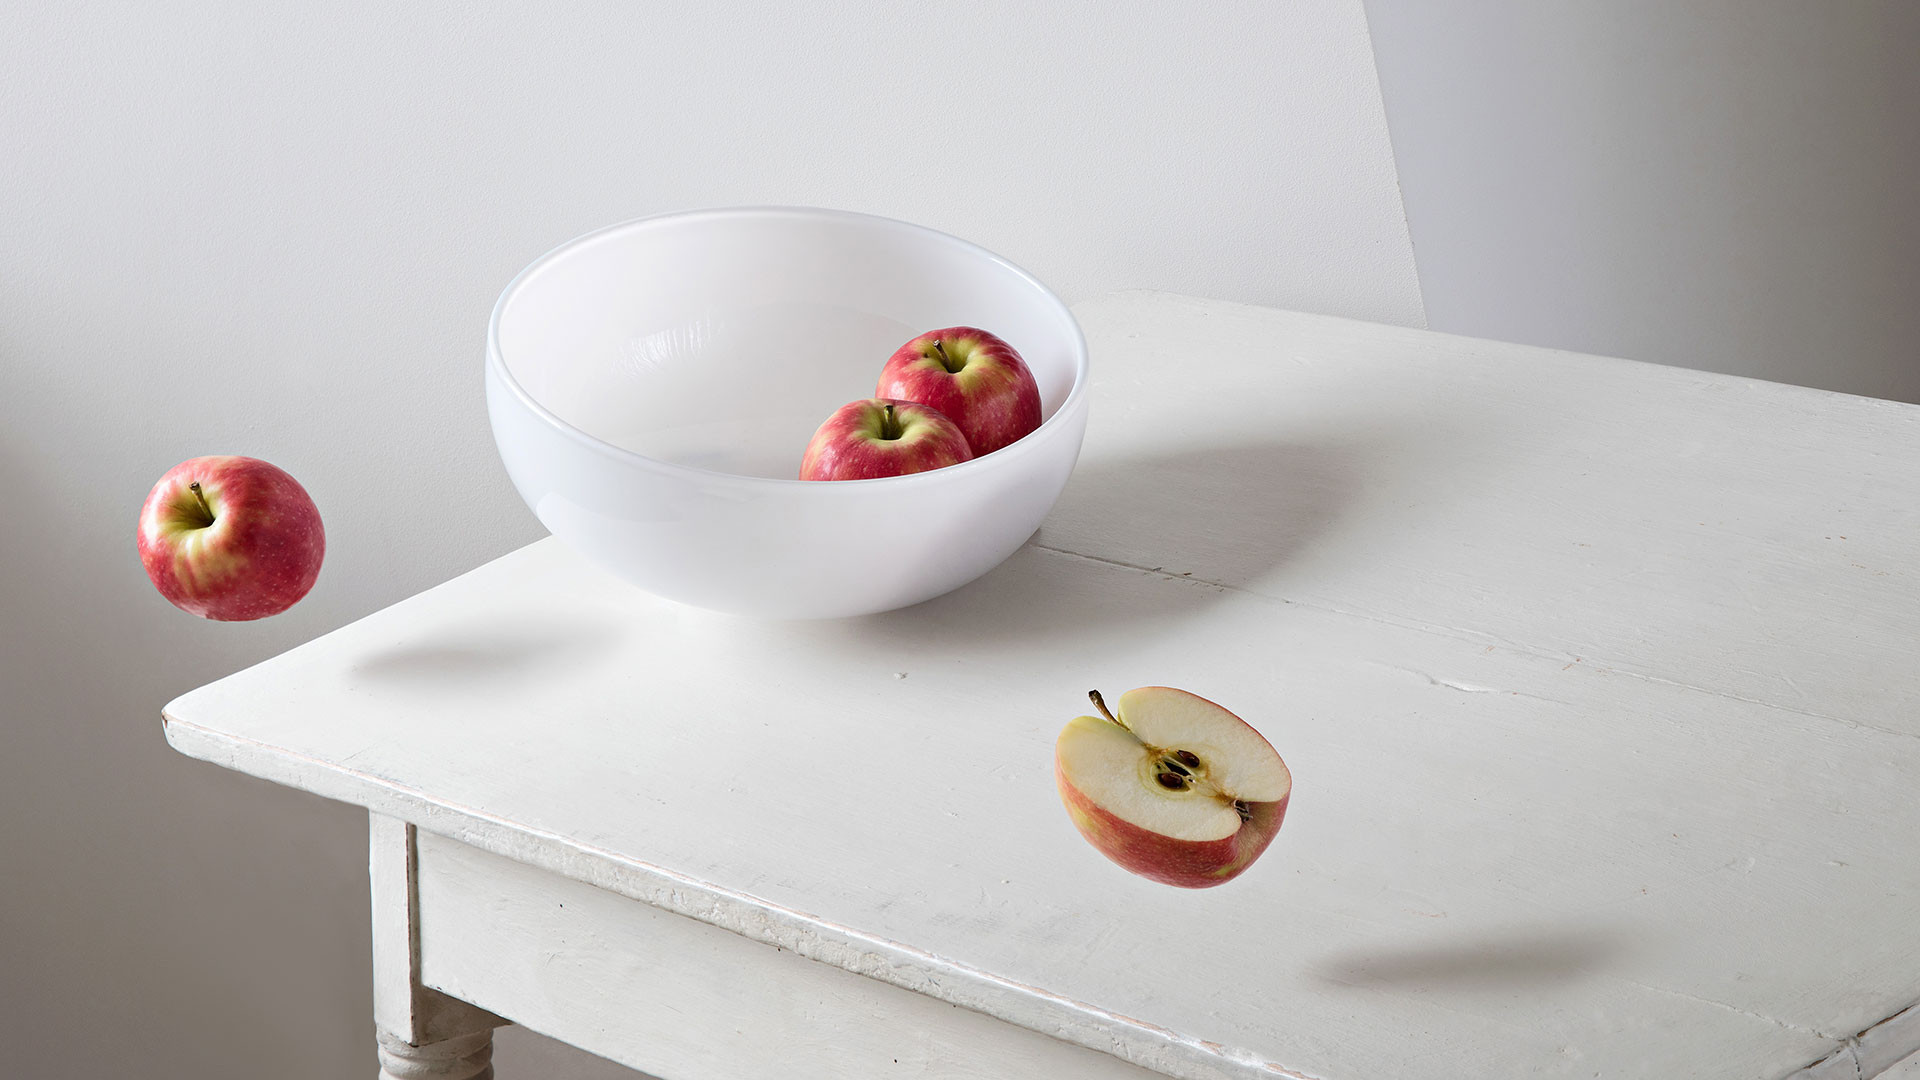 Pink Lady Food Photographer of the Year An Apple A Day, Unstill Life, Polina Plotnikova